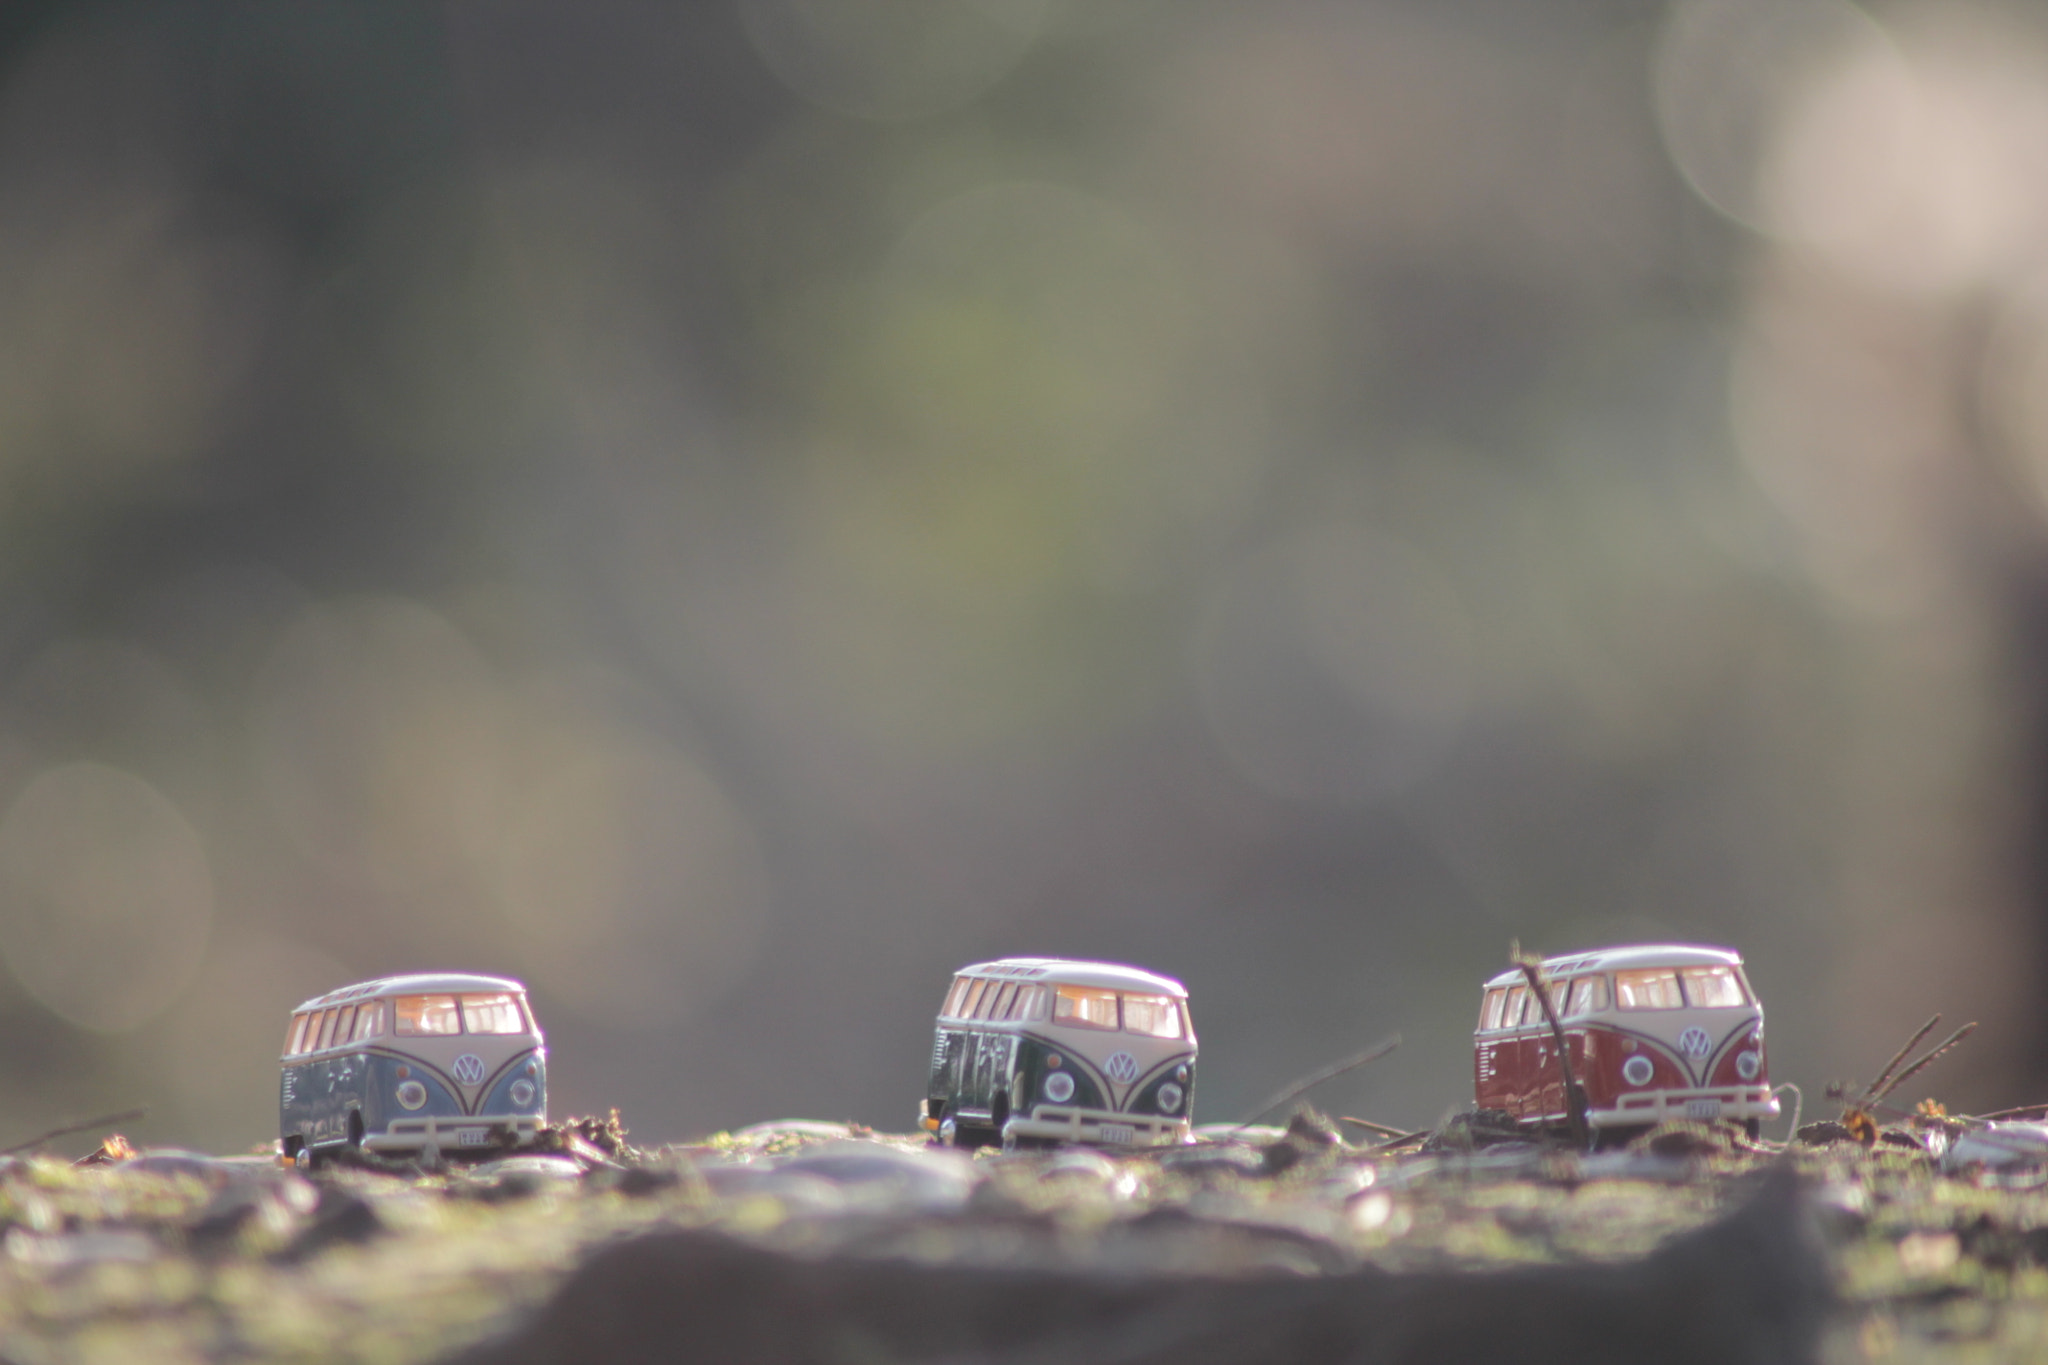 Photograph camper by Elliott Shah on 500px